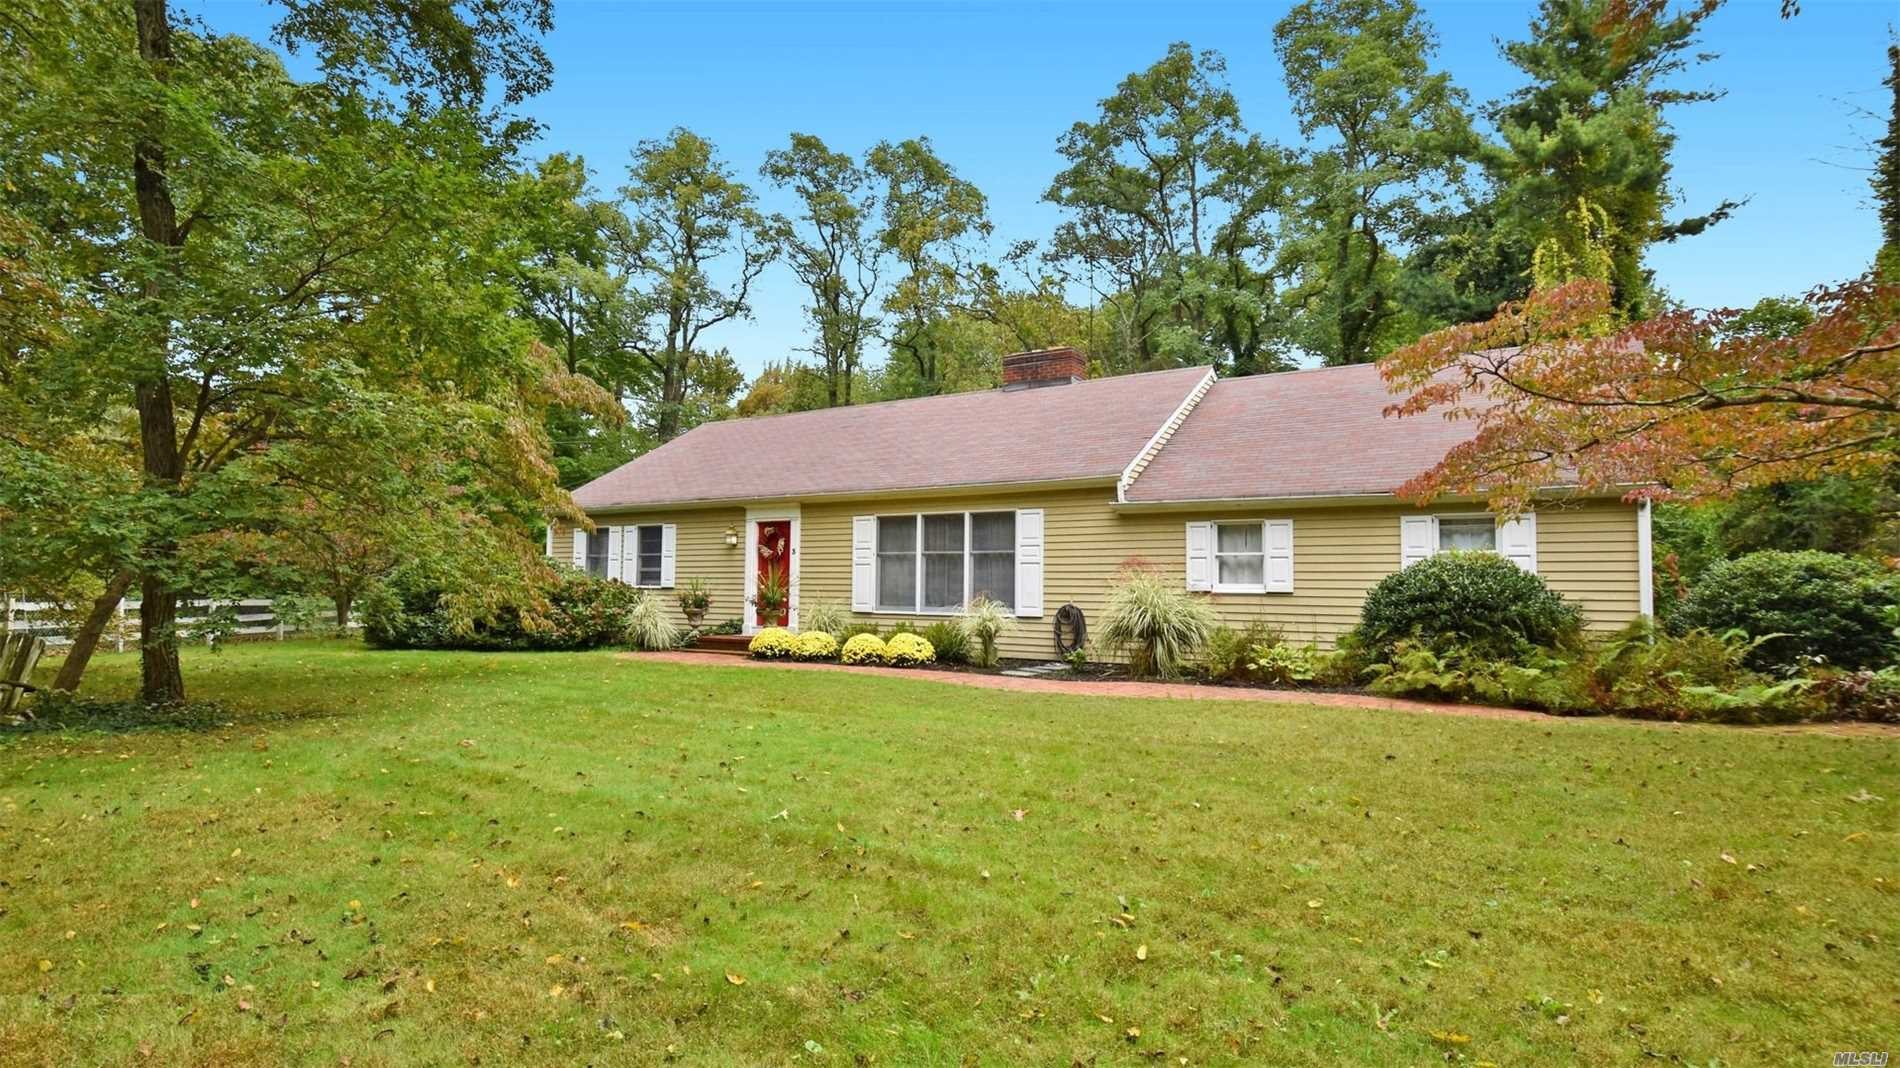 Charming Farm Ranch Set On Parklike Acre With Wonderful Patio For Bbqs. This Home Boasts An Updated Farmhouse Eat In Kitchen, Hardwood Floors, Cac, And 1st Floor Living Incl. W&D In Mudroom Off The Kitchen. Set Close To The Village For Quick Easy Access, Yet In A Country, Treed, Gentrified Section Of Northport.